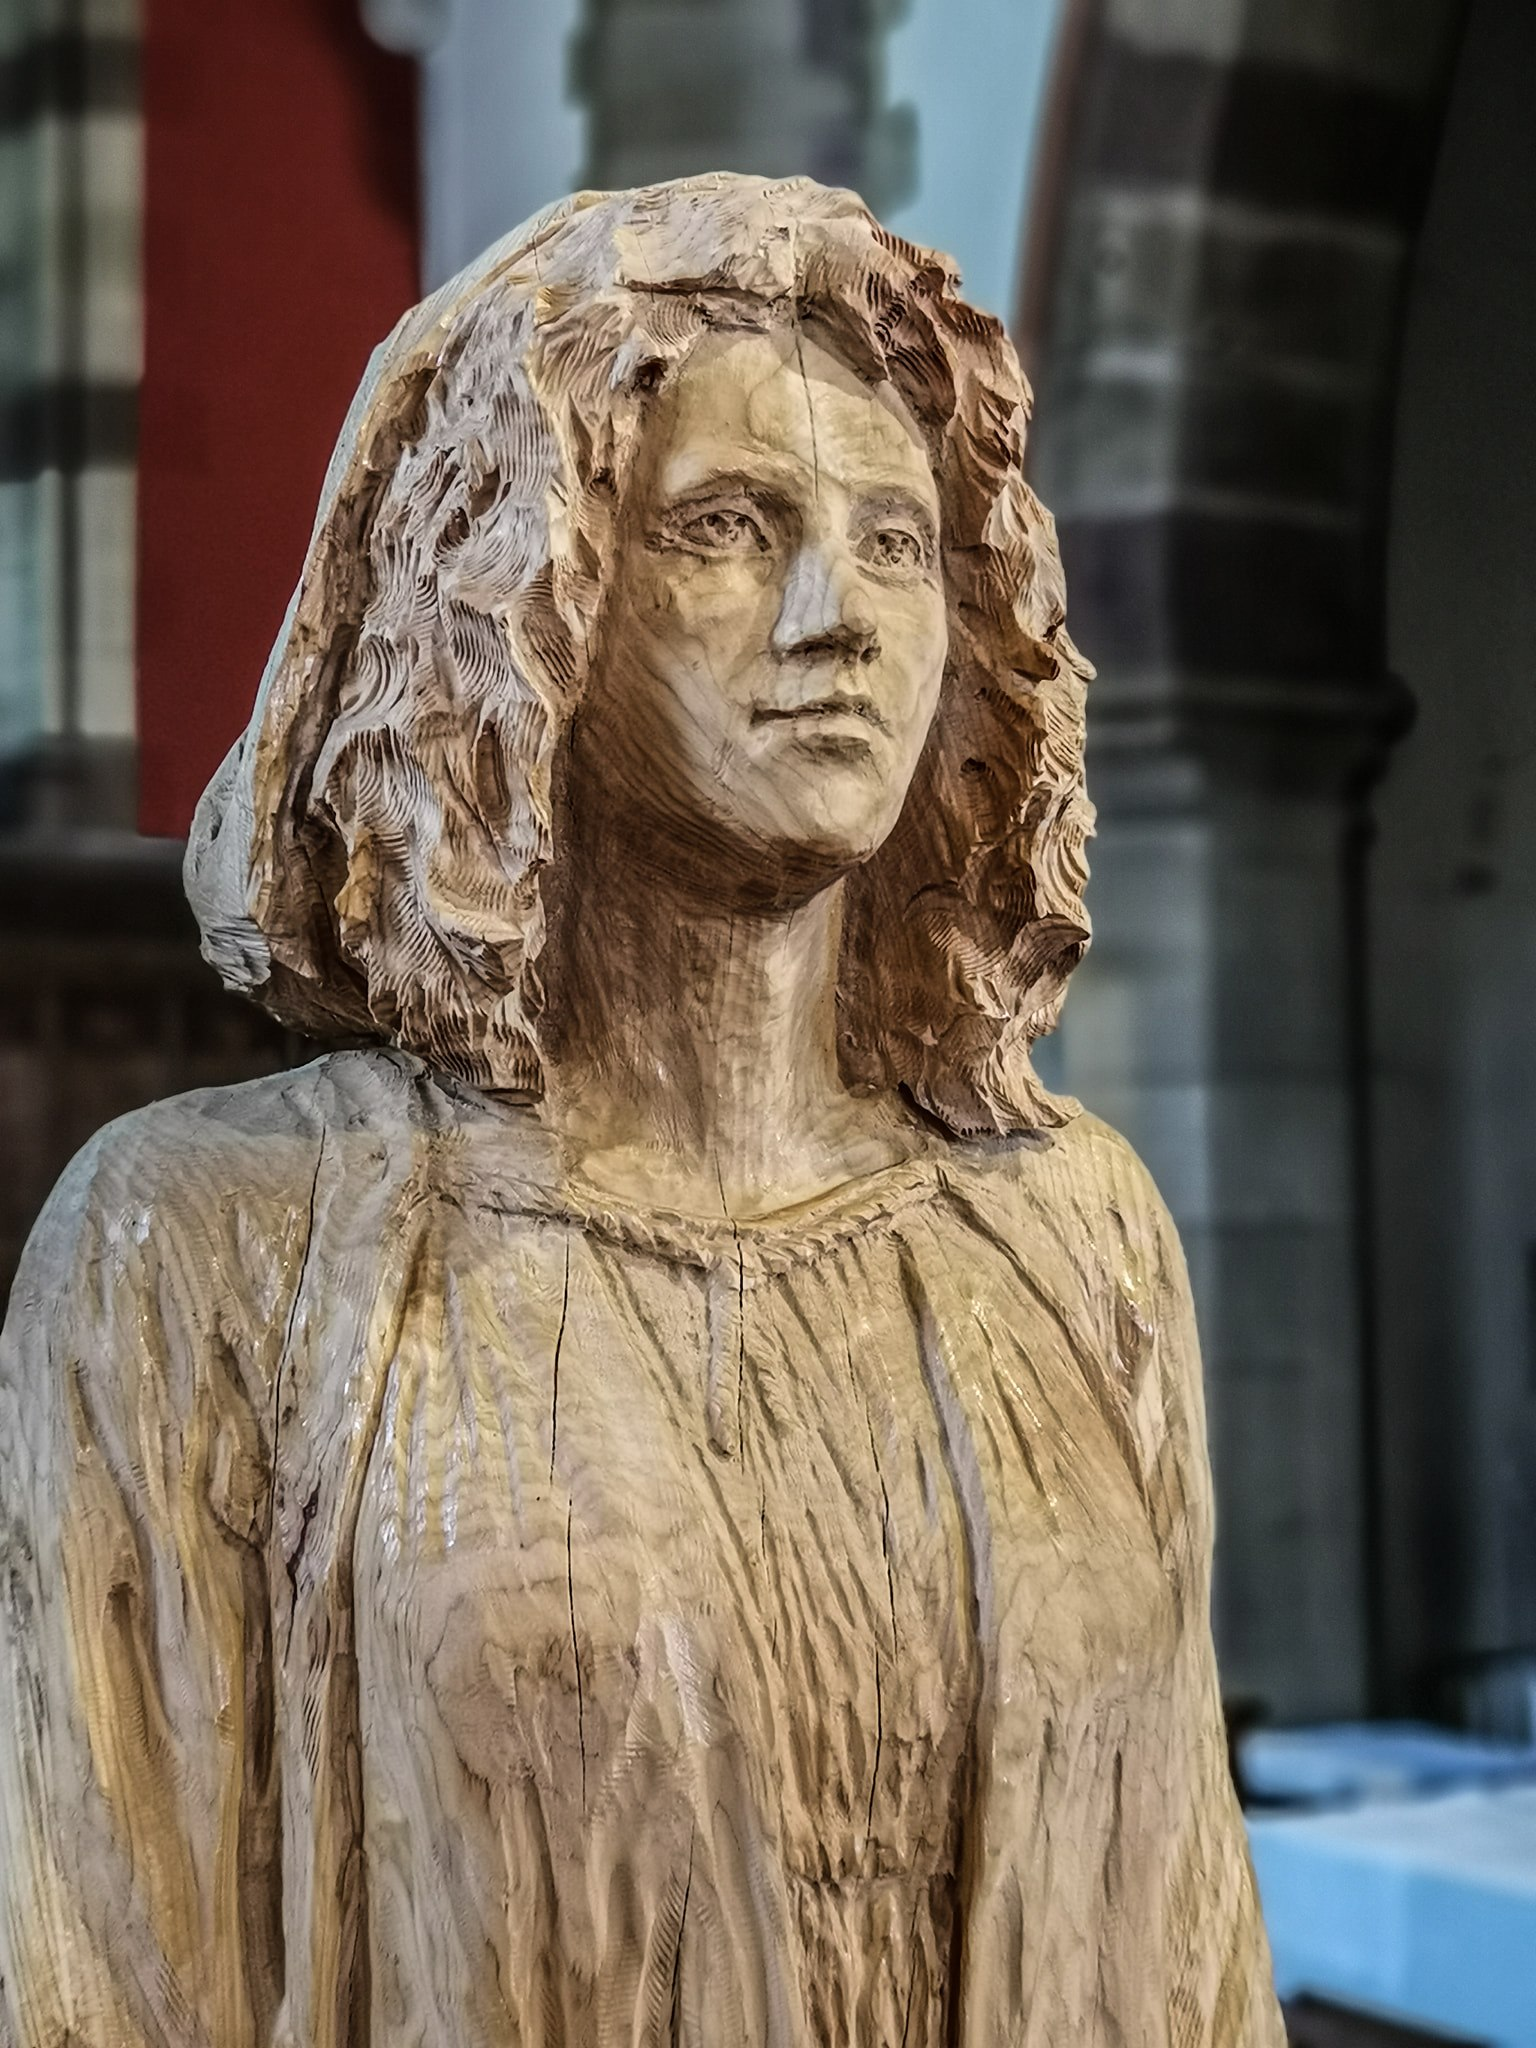 life size sculpture of a young female carved from oak by Simon O'Rourke